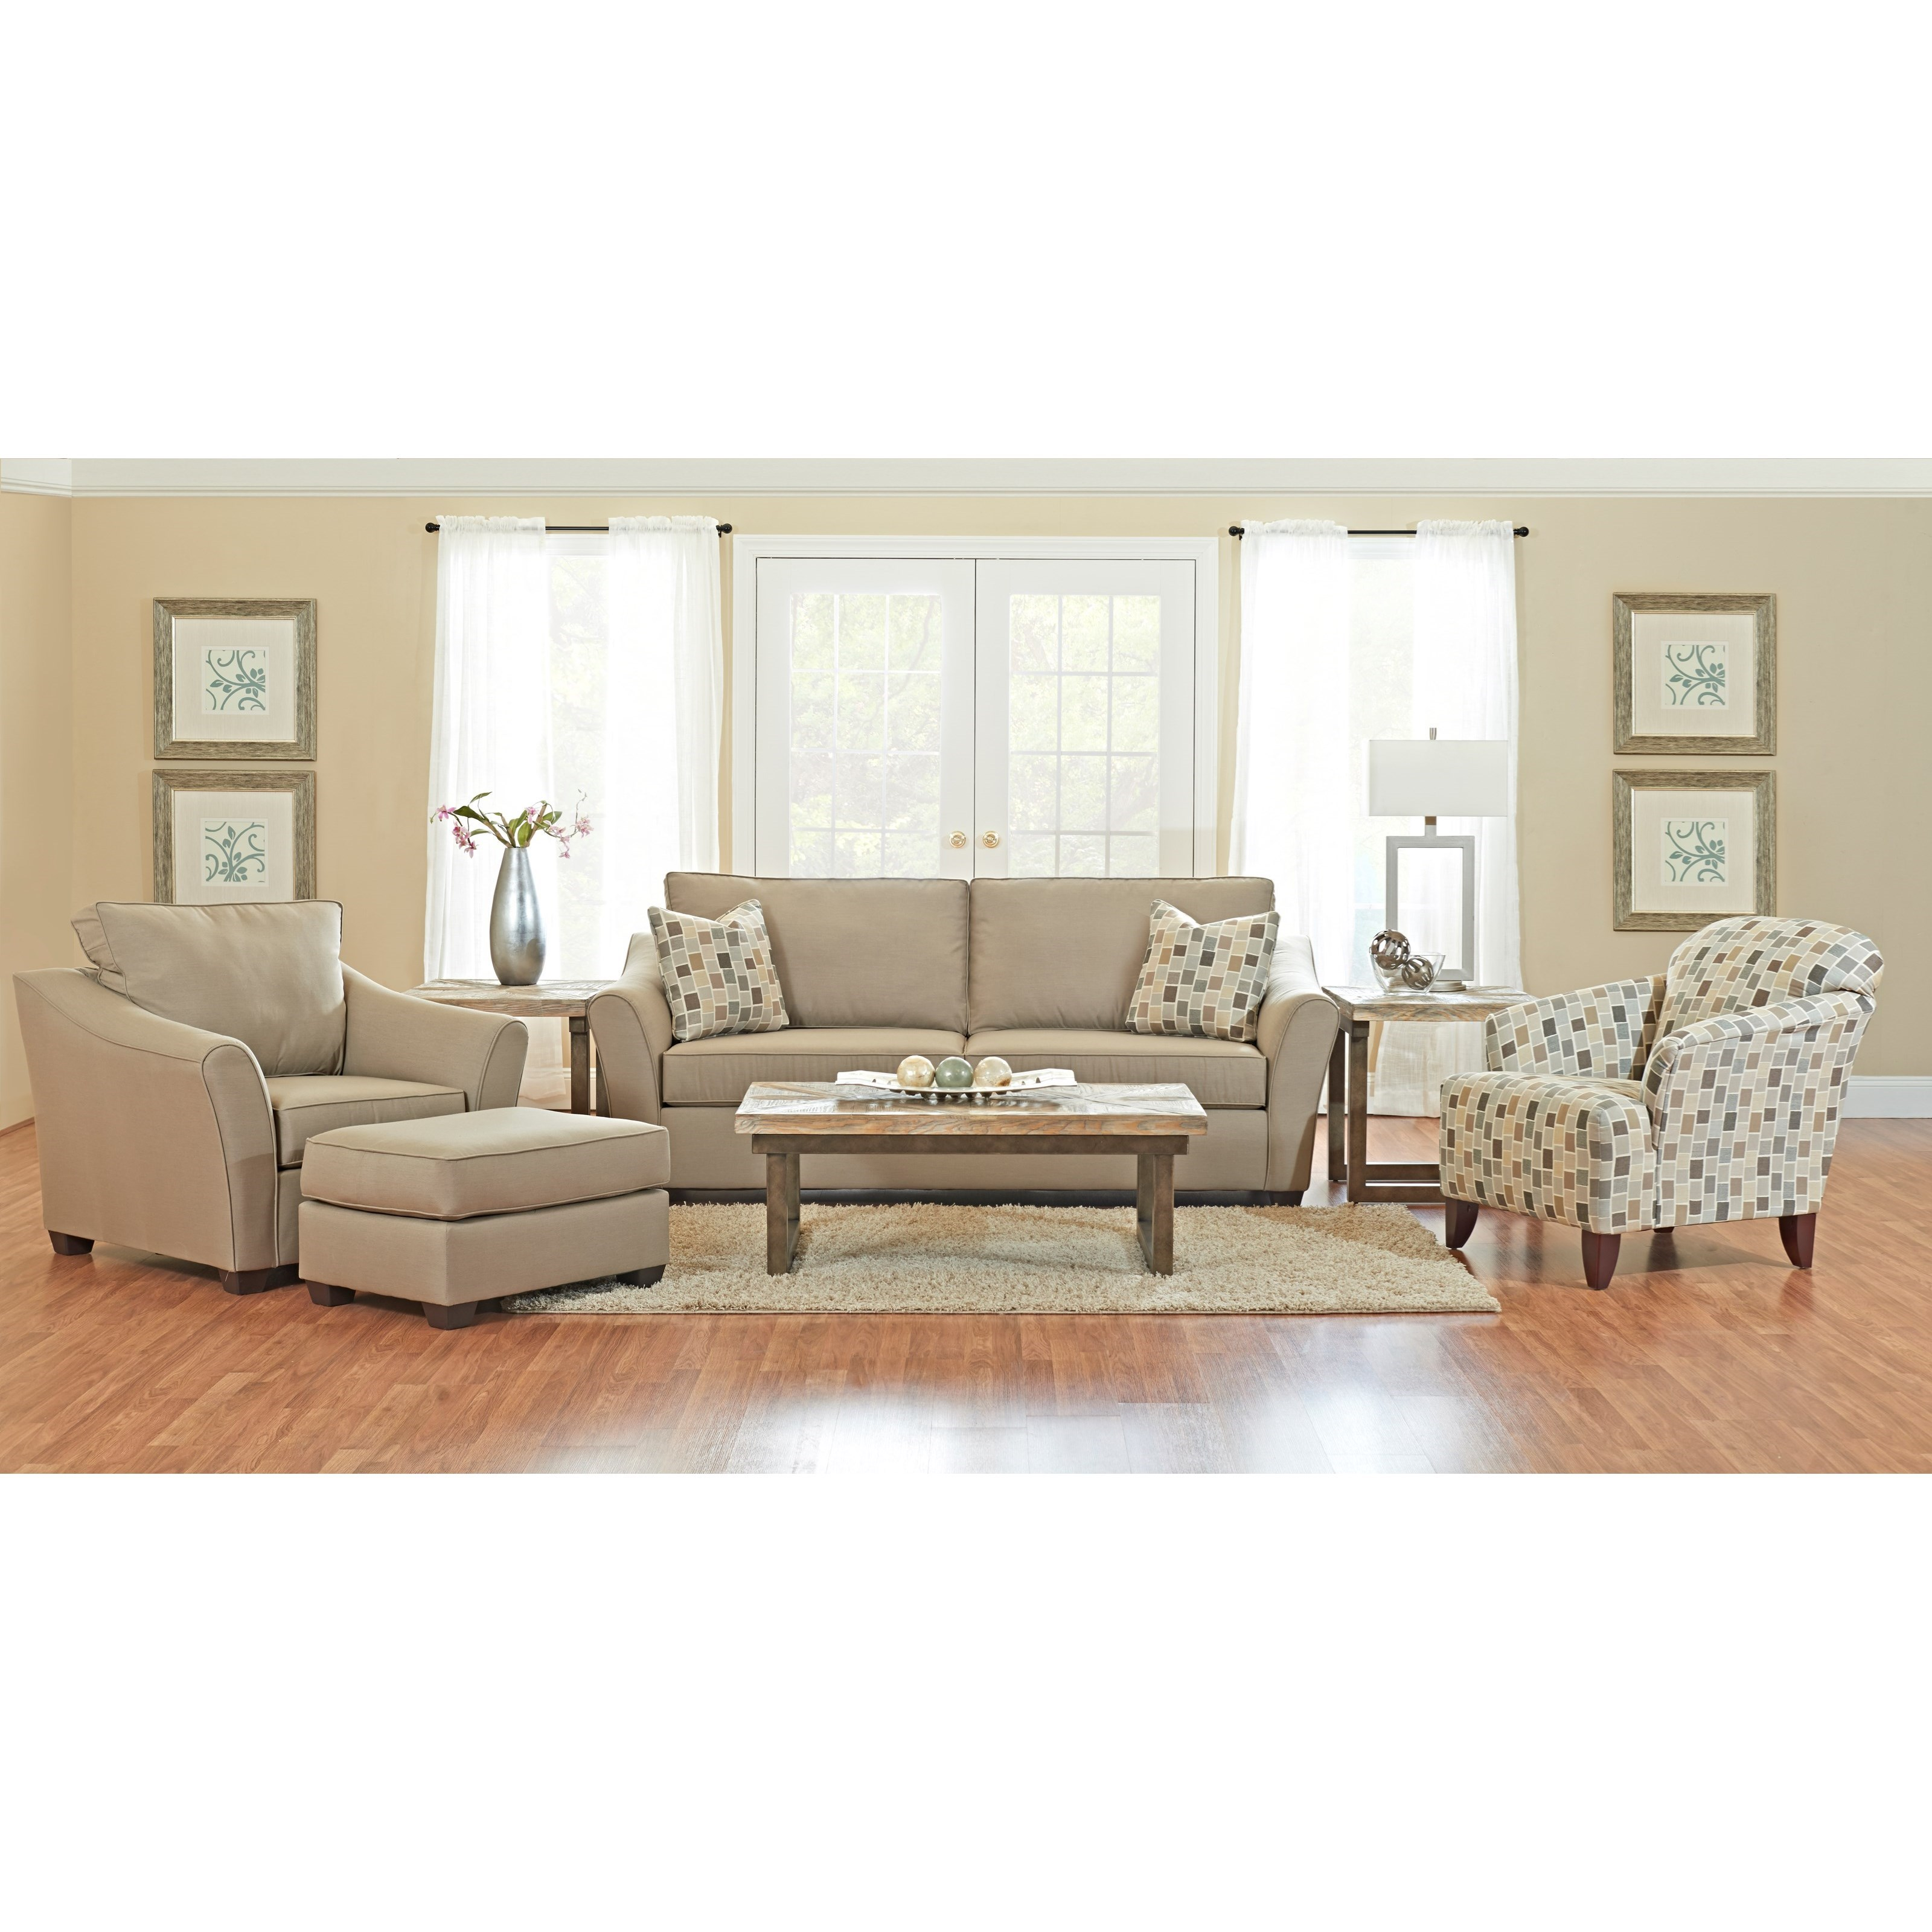 Linville Living Room Group by Klaussner at H.L. Stephens